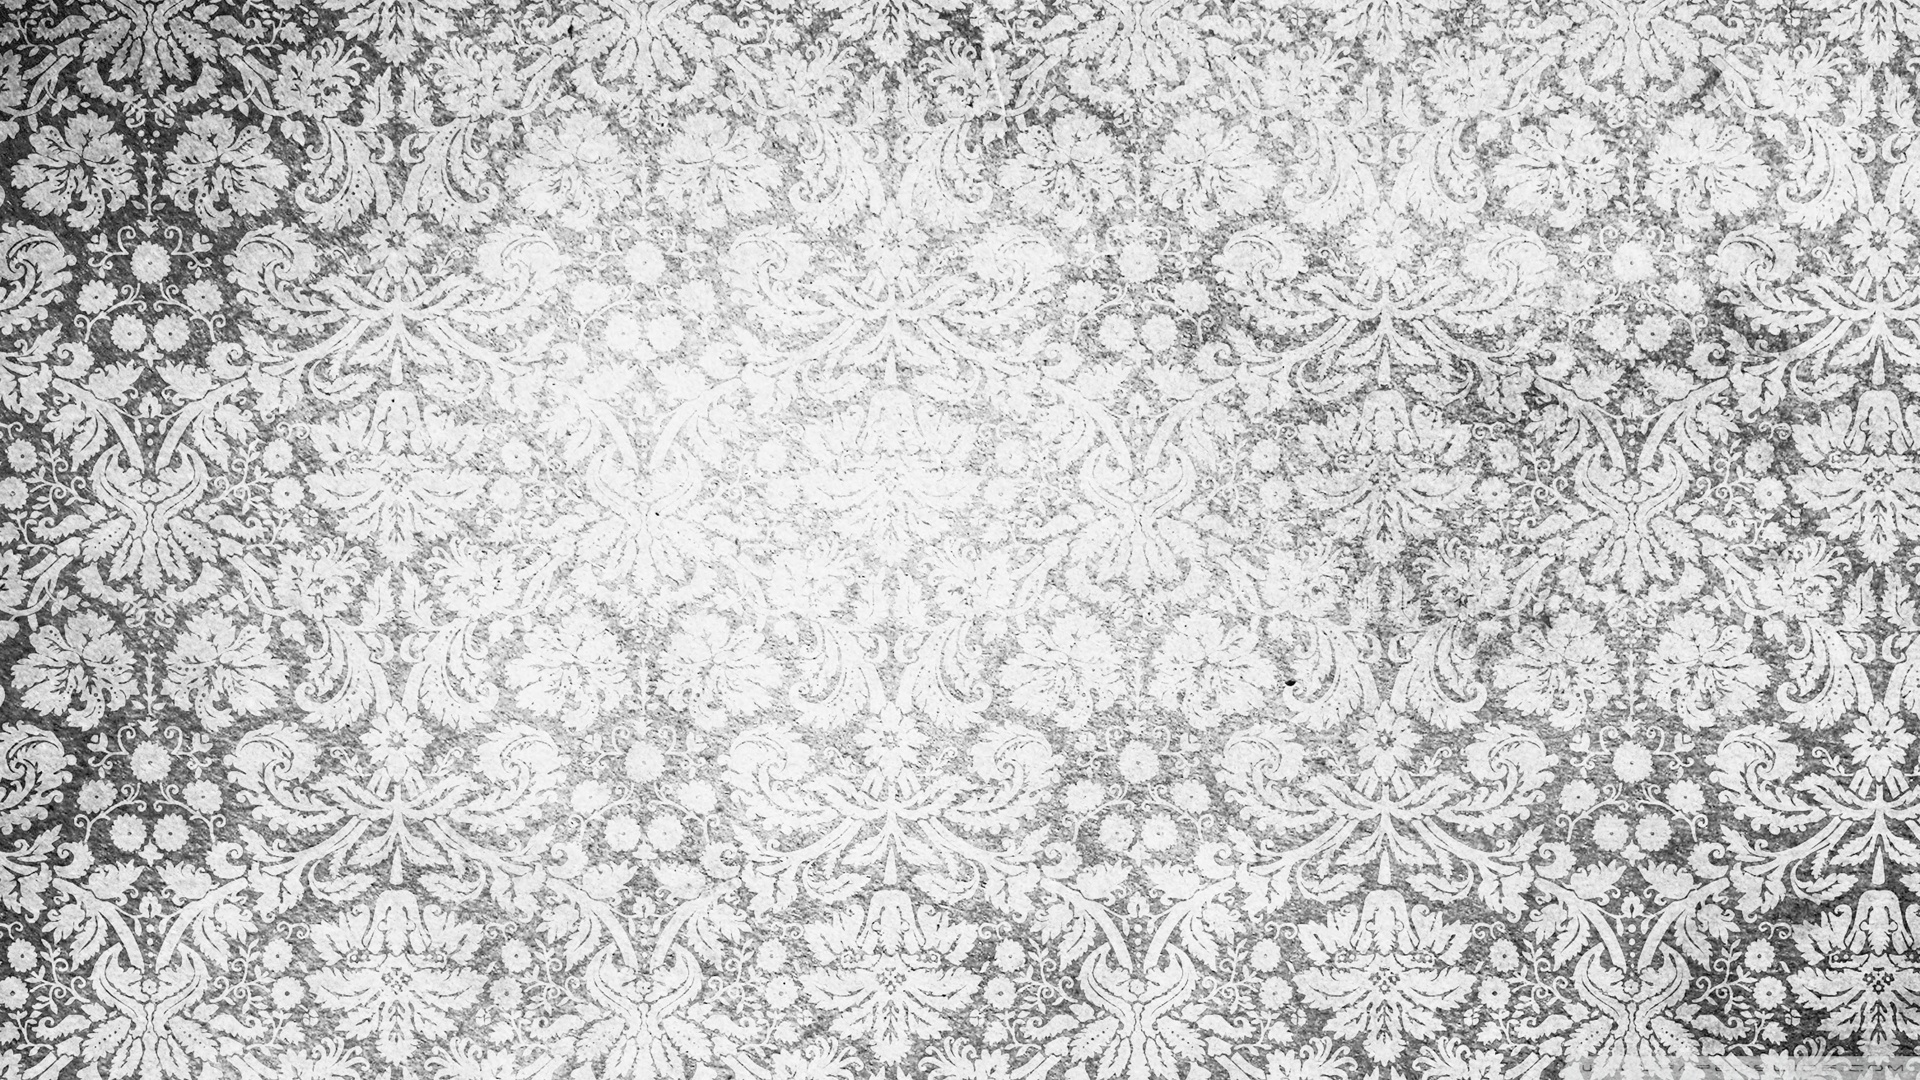 black white wallpaper pattern vintage images 1920x1080 1920x1080